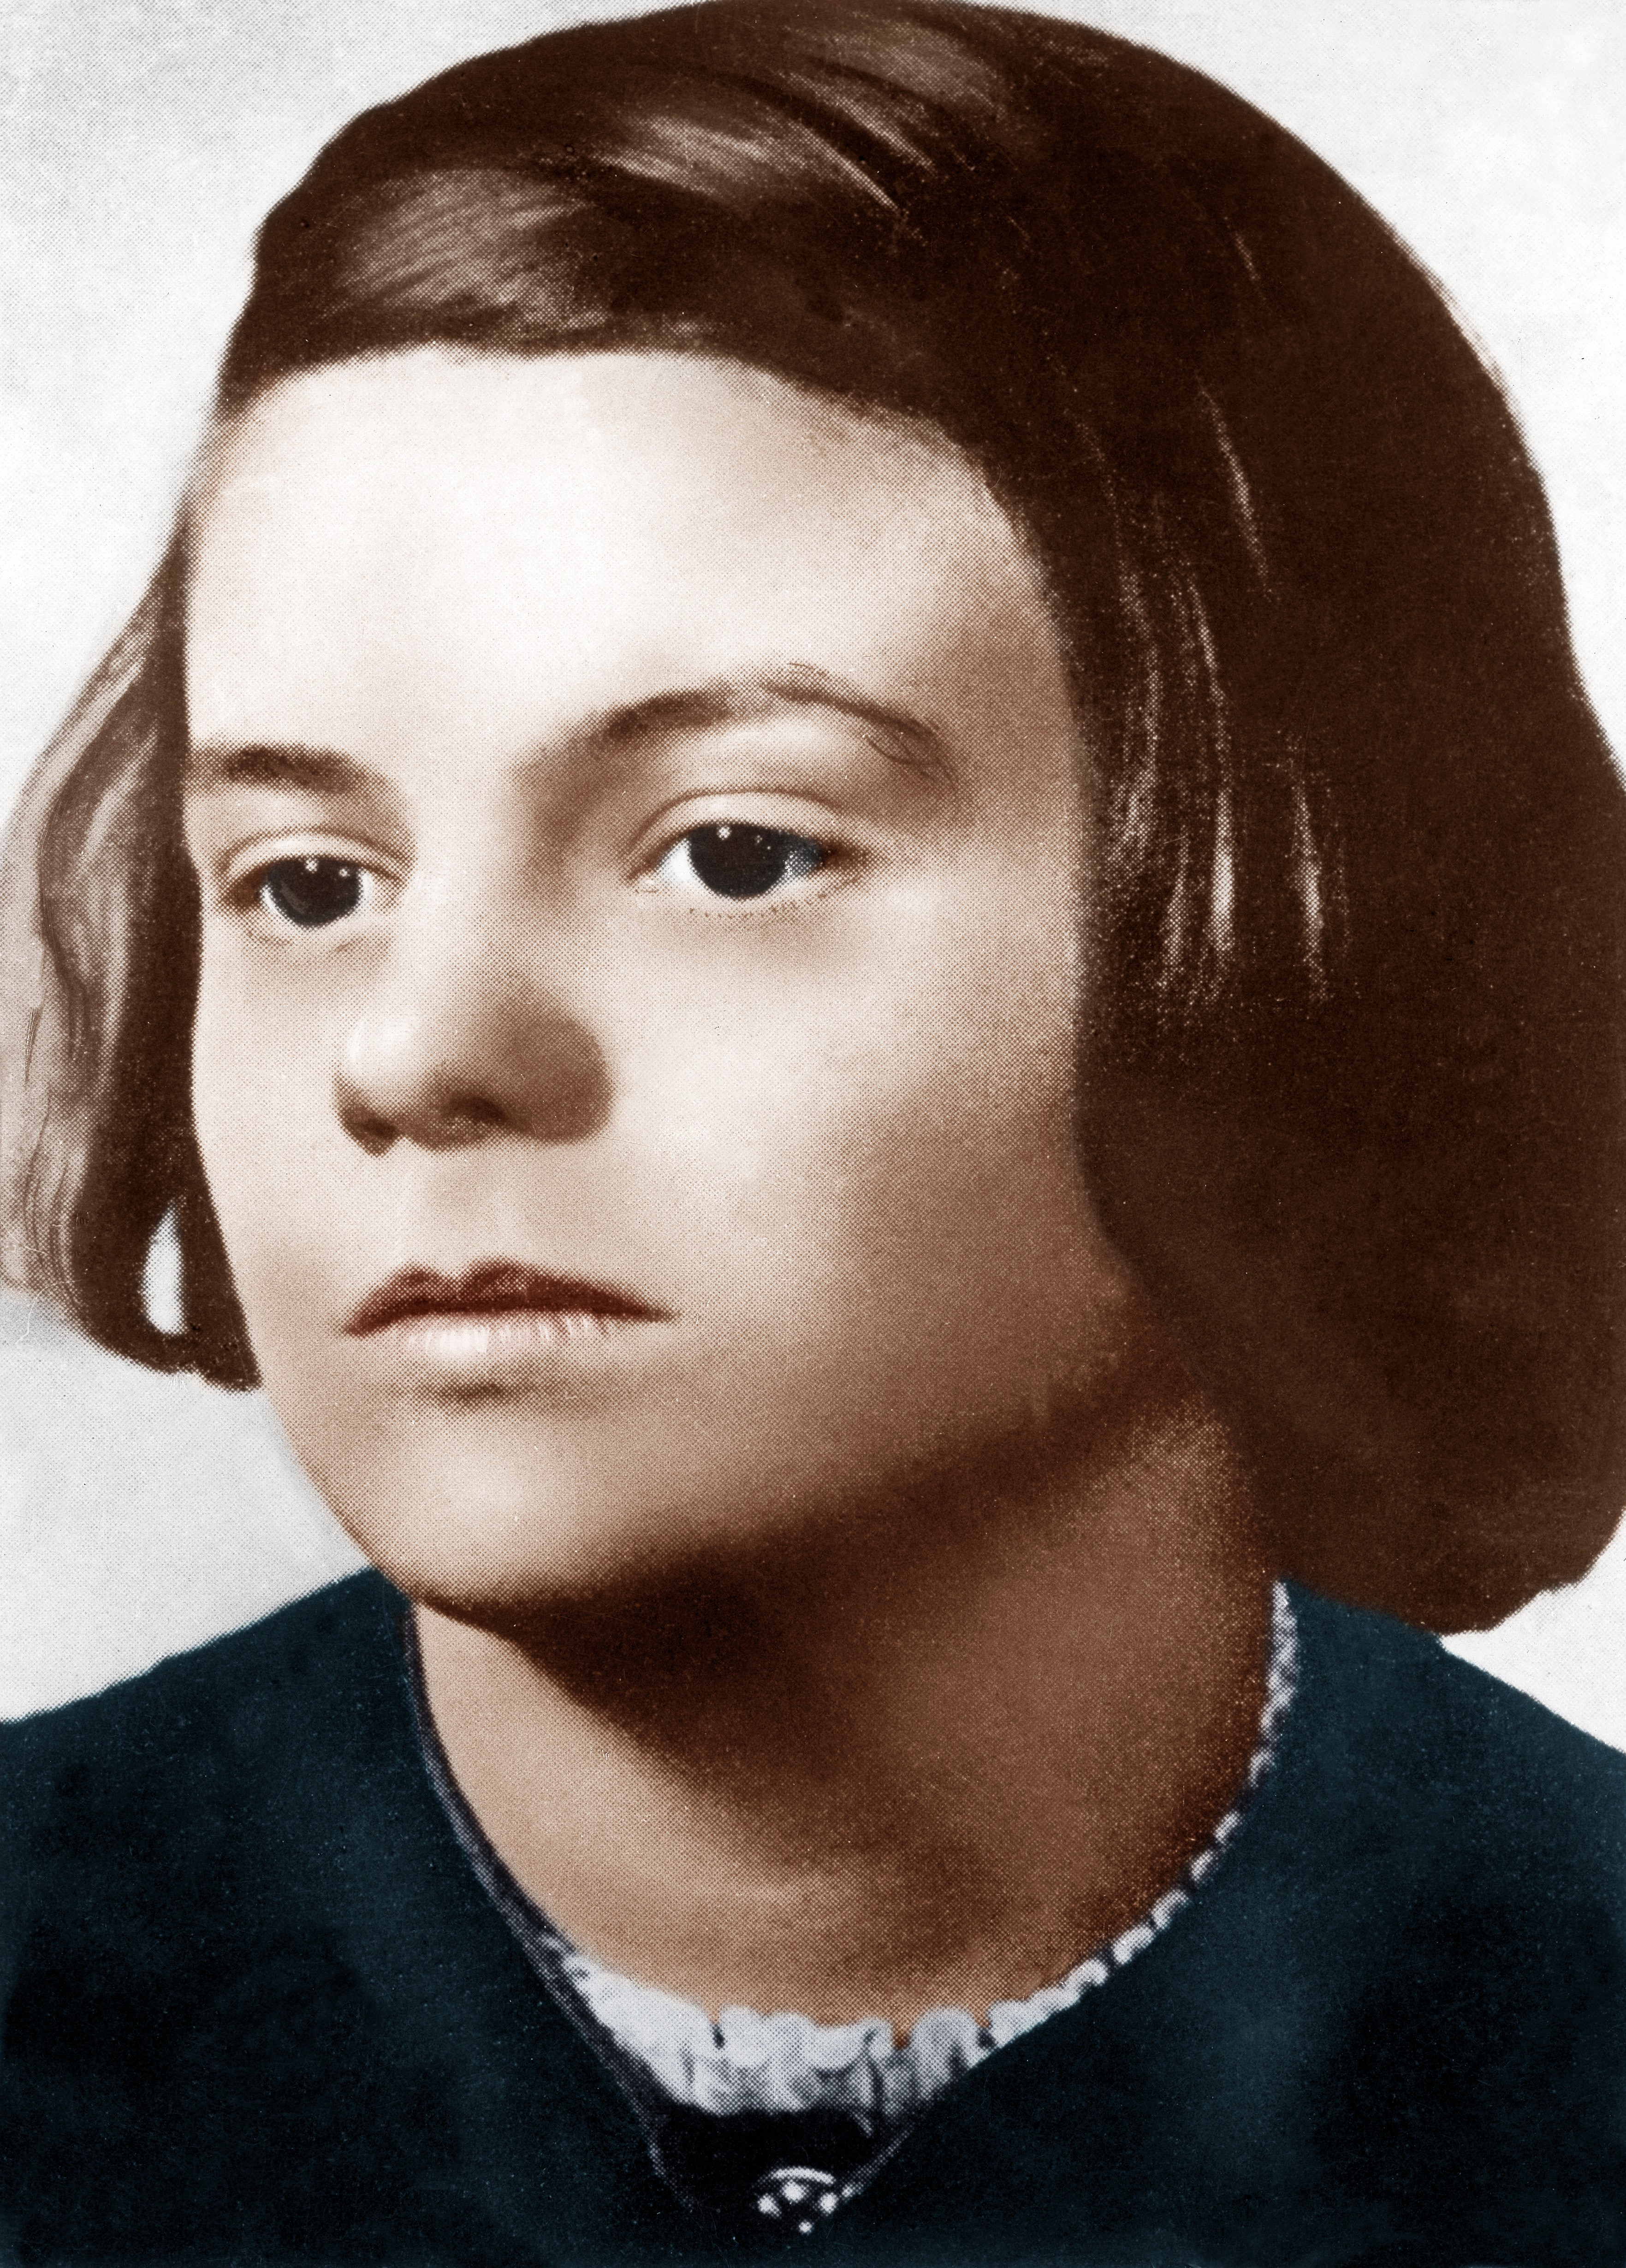 Beheaded By The Nazis At Age 21  Sophie Scholl Died